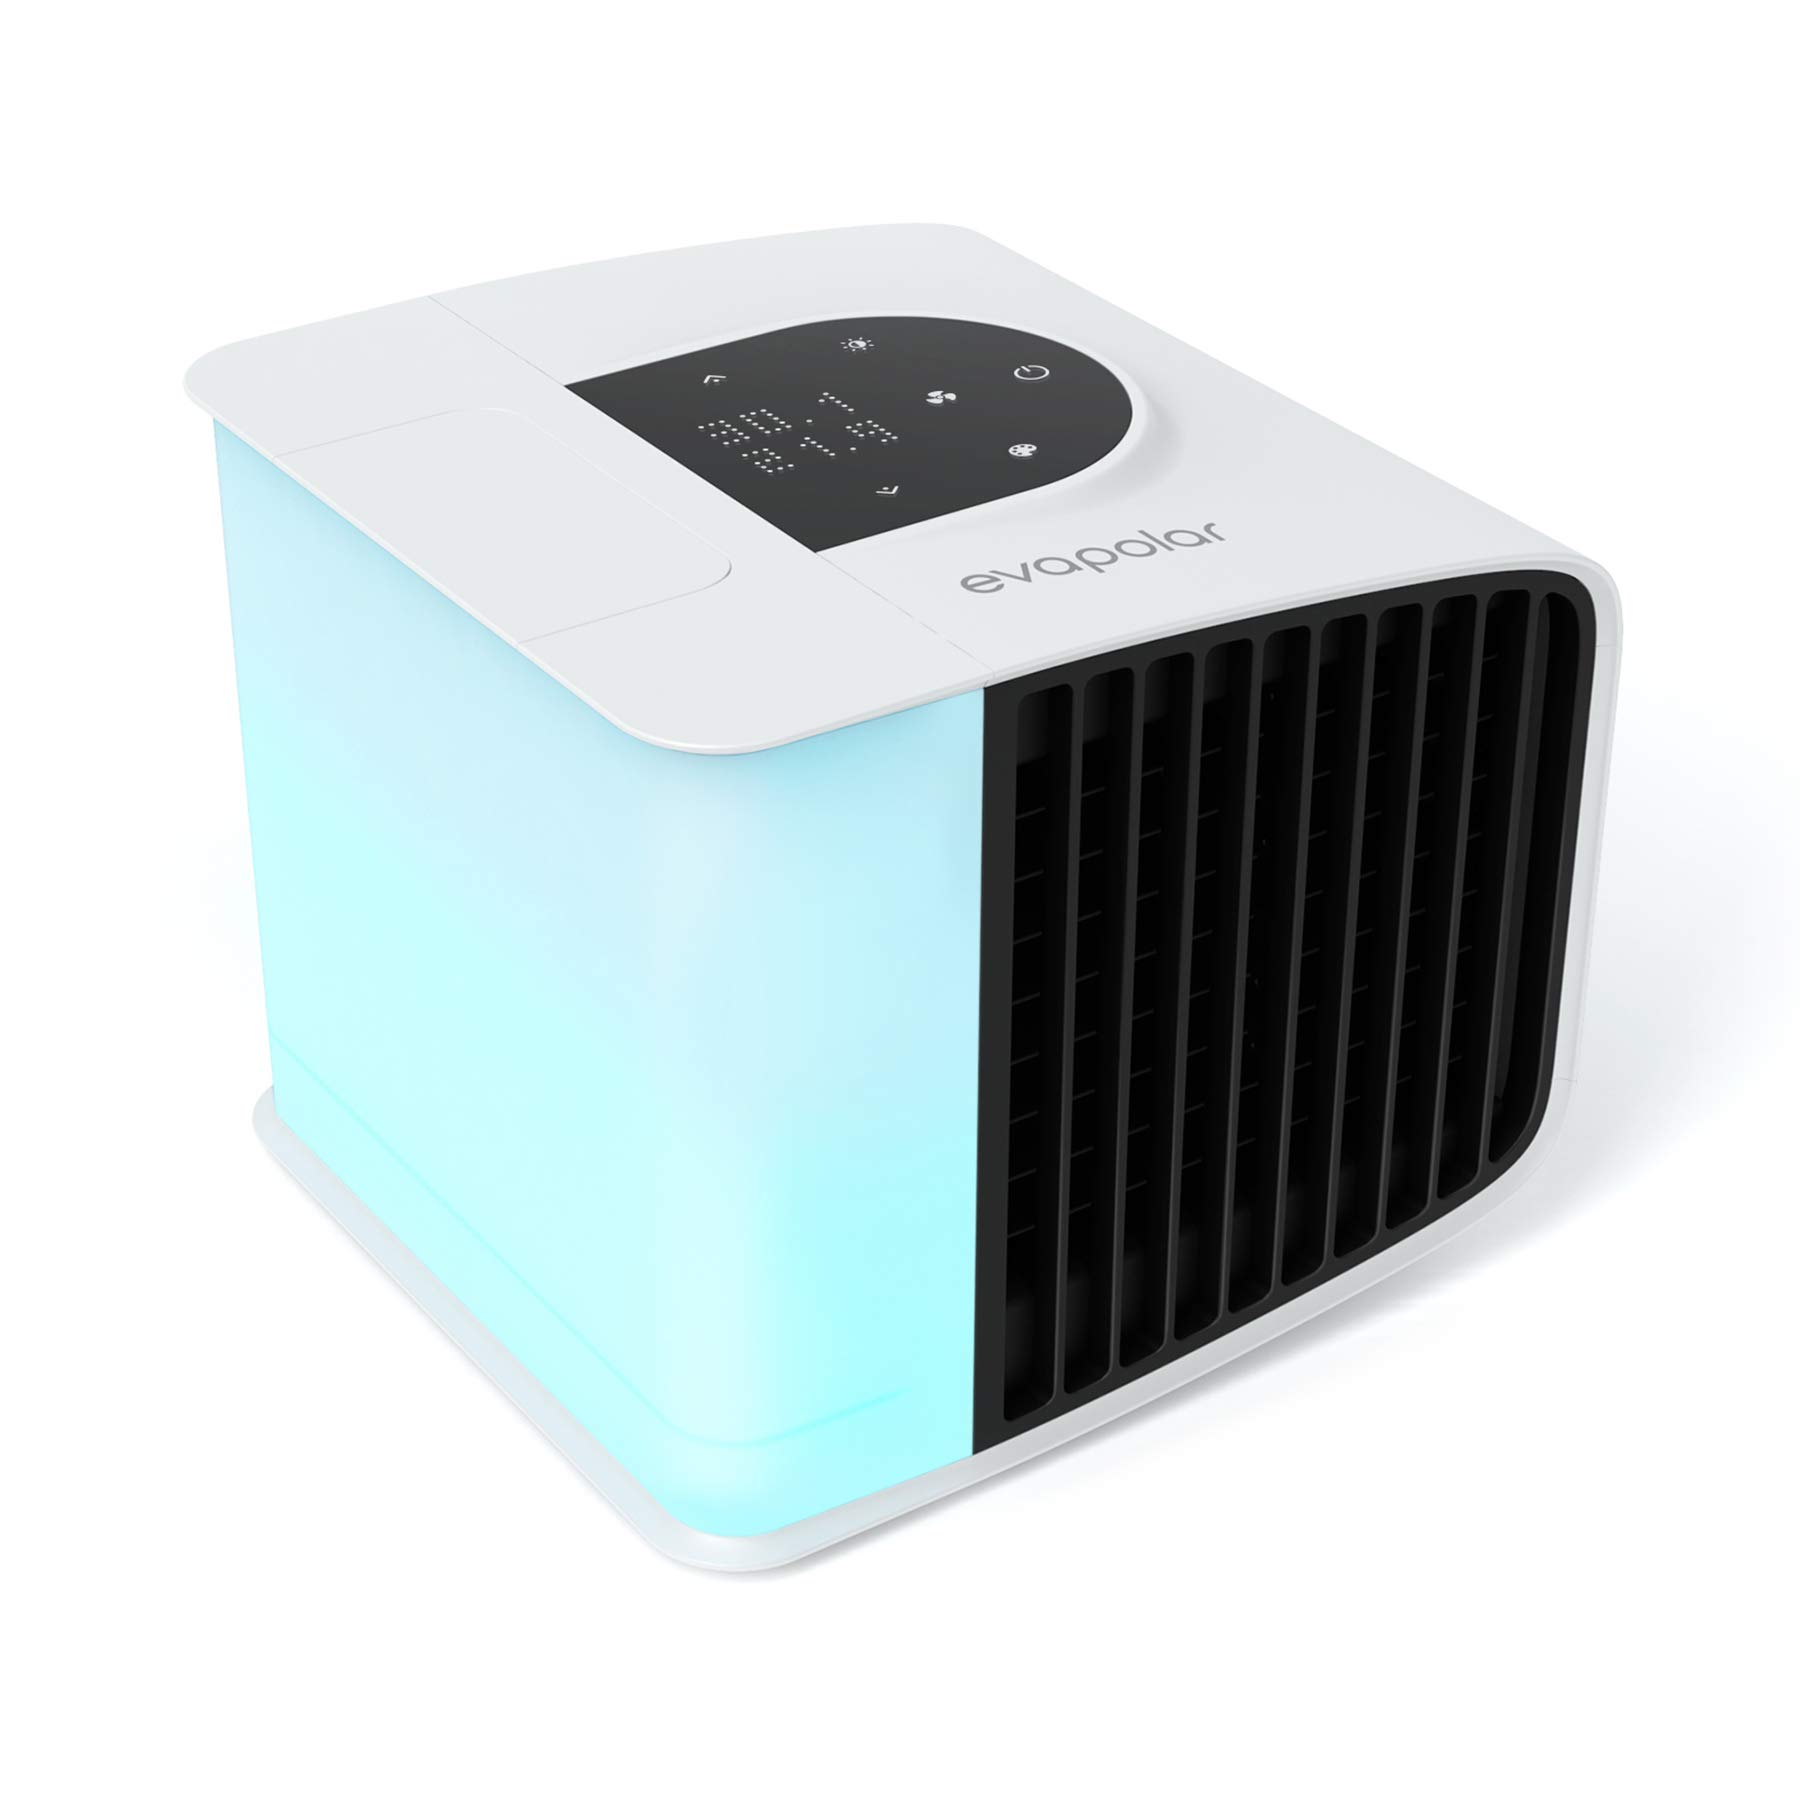 Evapolar EvaSMART Personal Evaporative Air Cooler, Purifier and Humidifier, Portable Air Conditioner EV-3000 with Alexa support - Opaque White